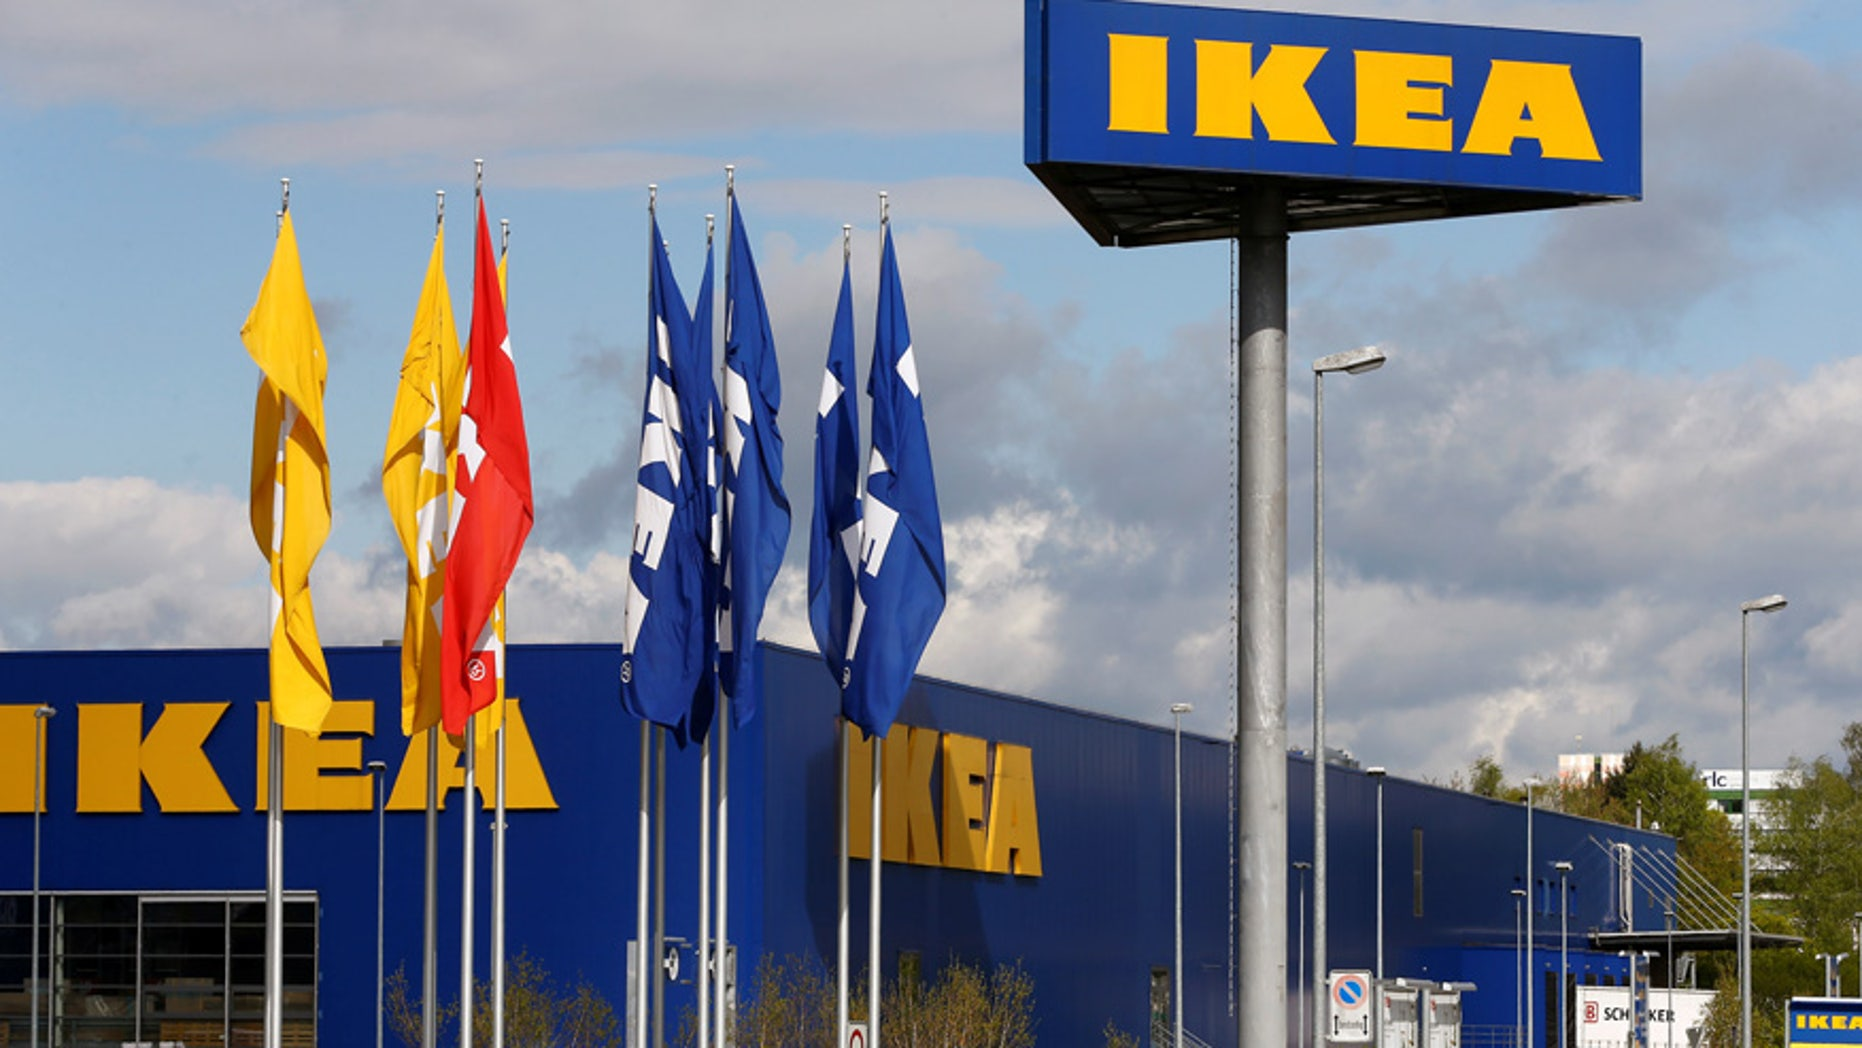 The company's logo is seen outside of an IKEA Group store in Spreitenbach, Switzerland April 27, 2016. REUTERS/Arnd Wiegmann - RTX2C60C